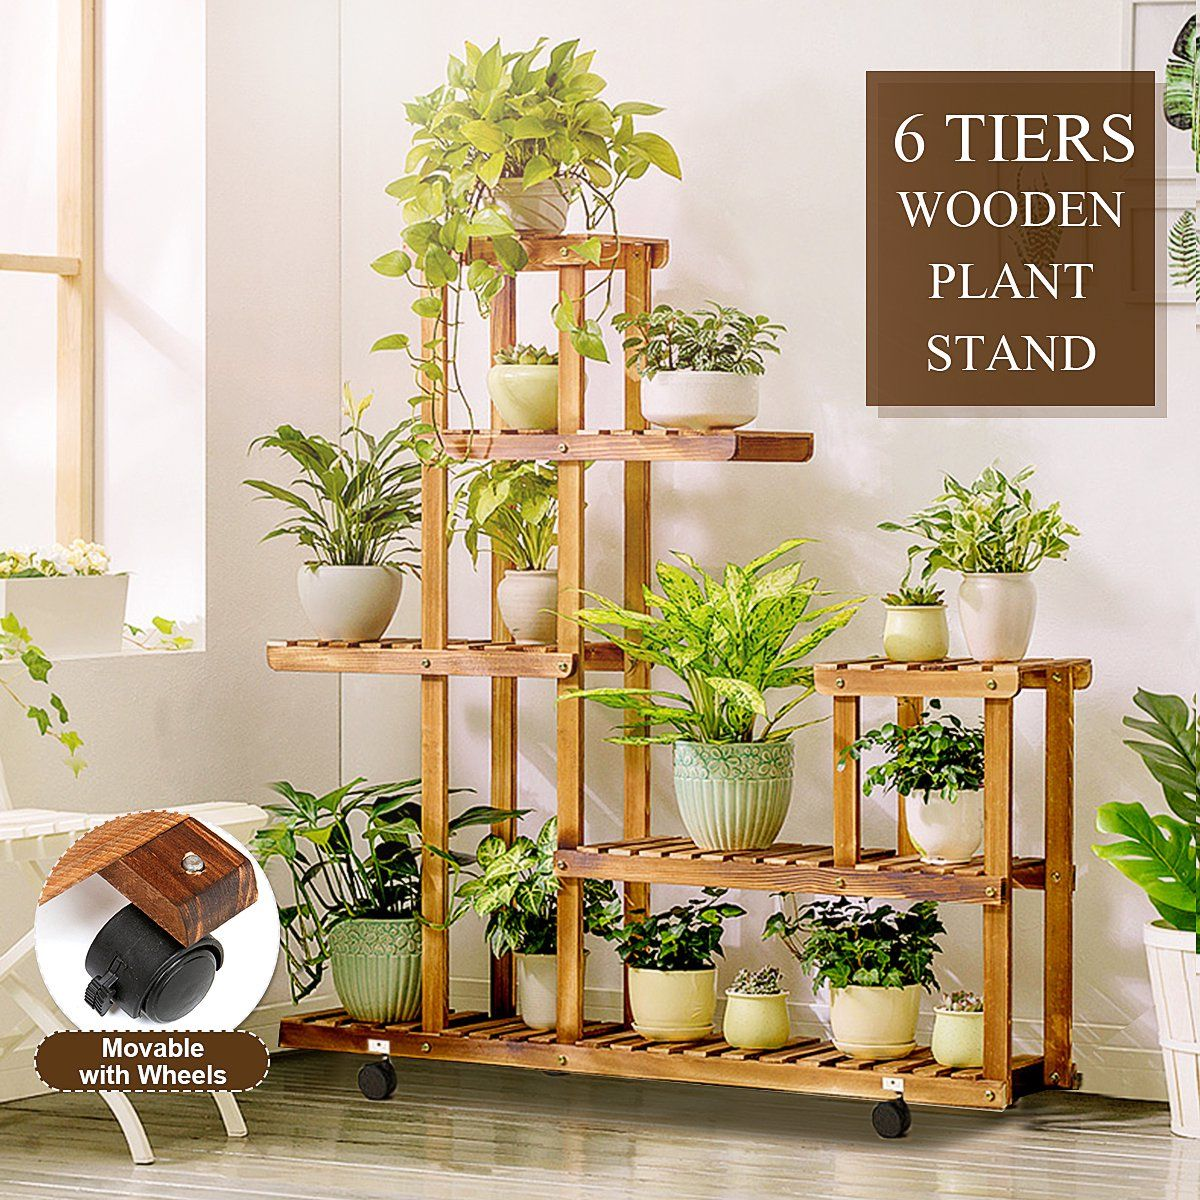 Rolling Plant Stand With Wheels Natural Wood 5 Tier Plant Shelf Indoor Outdoor Flower Pot Display Rack Holder Patio Stand For Home Garden Decor Walmart Com In 2020 Plant Stand Indoor